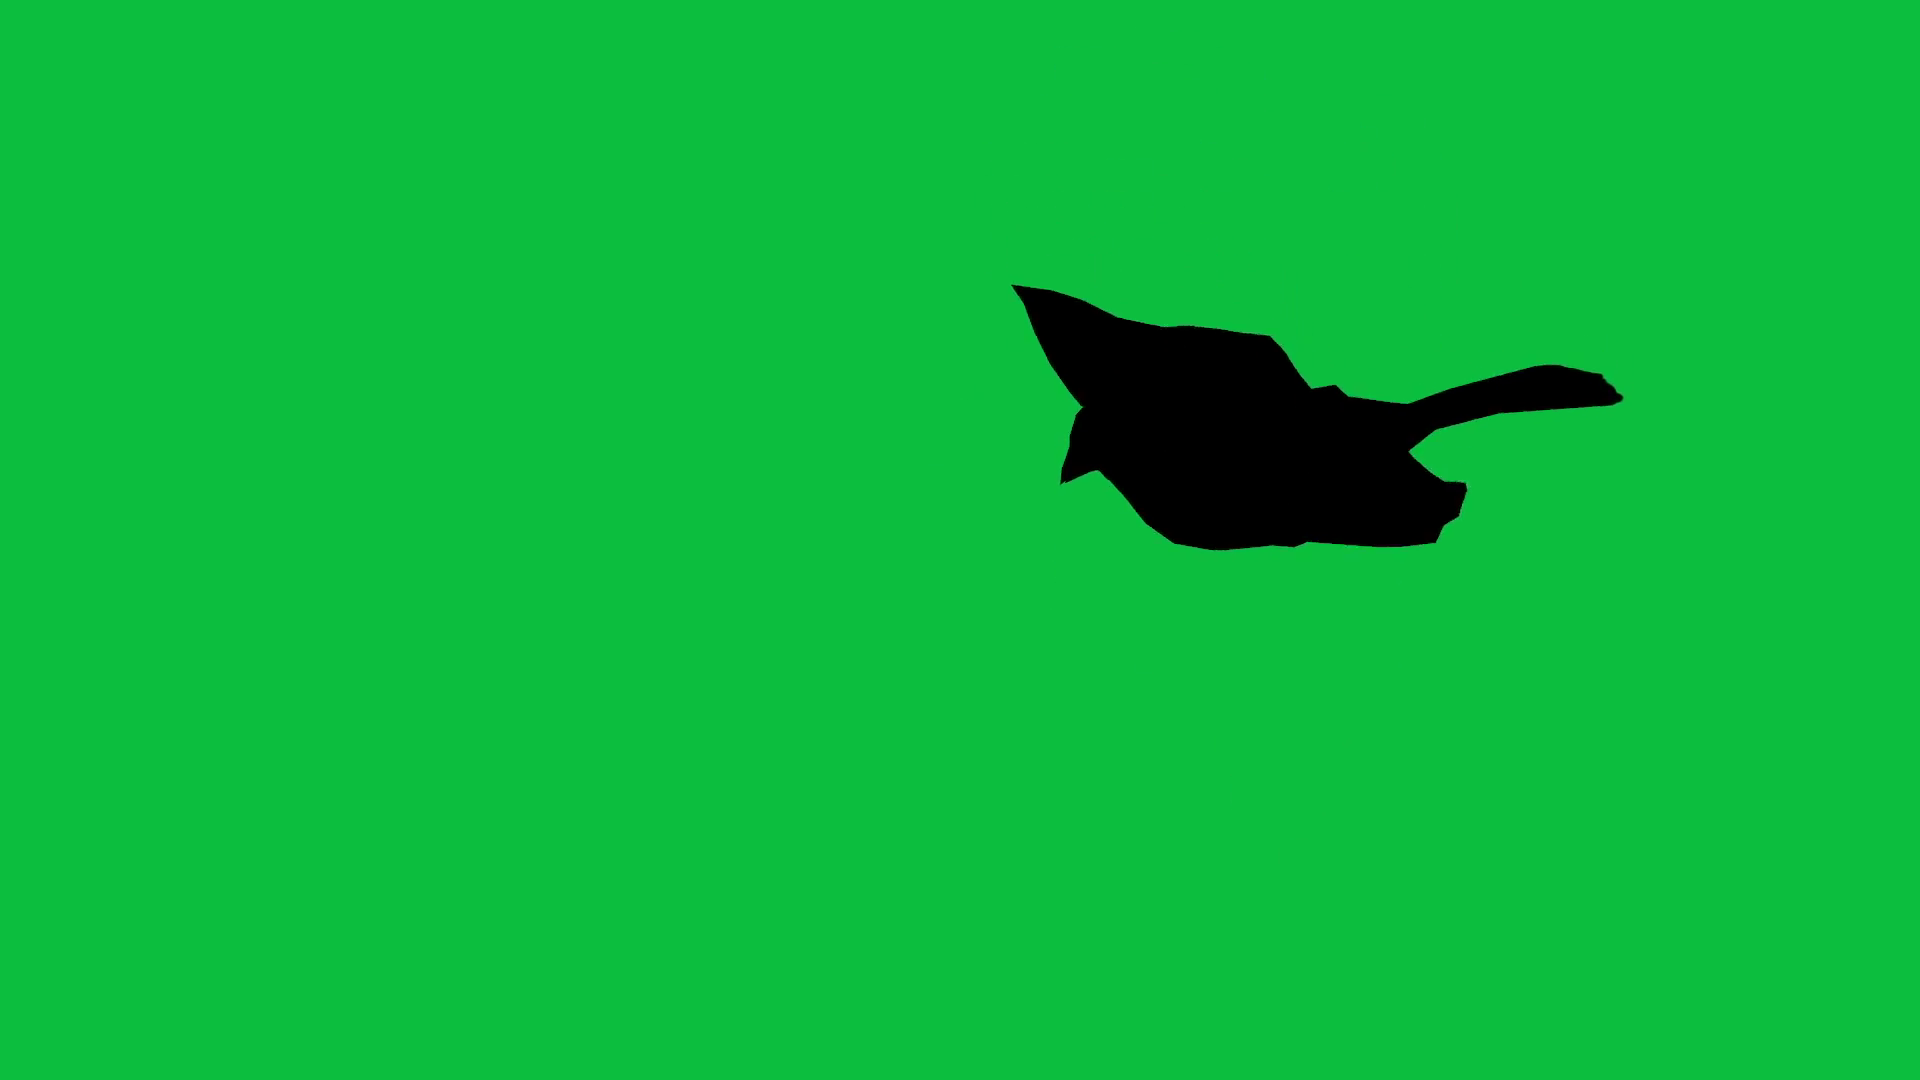 1920x1080 Birds Flying In Silhouette Motion Background